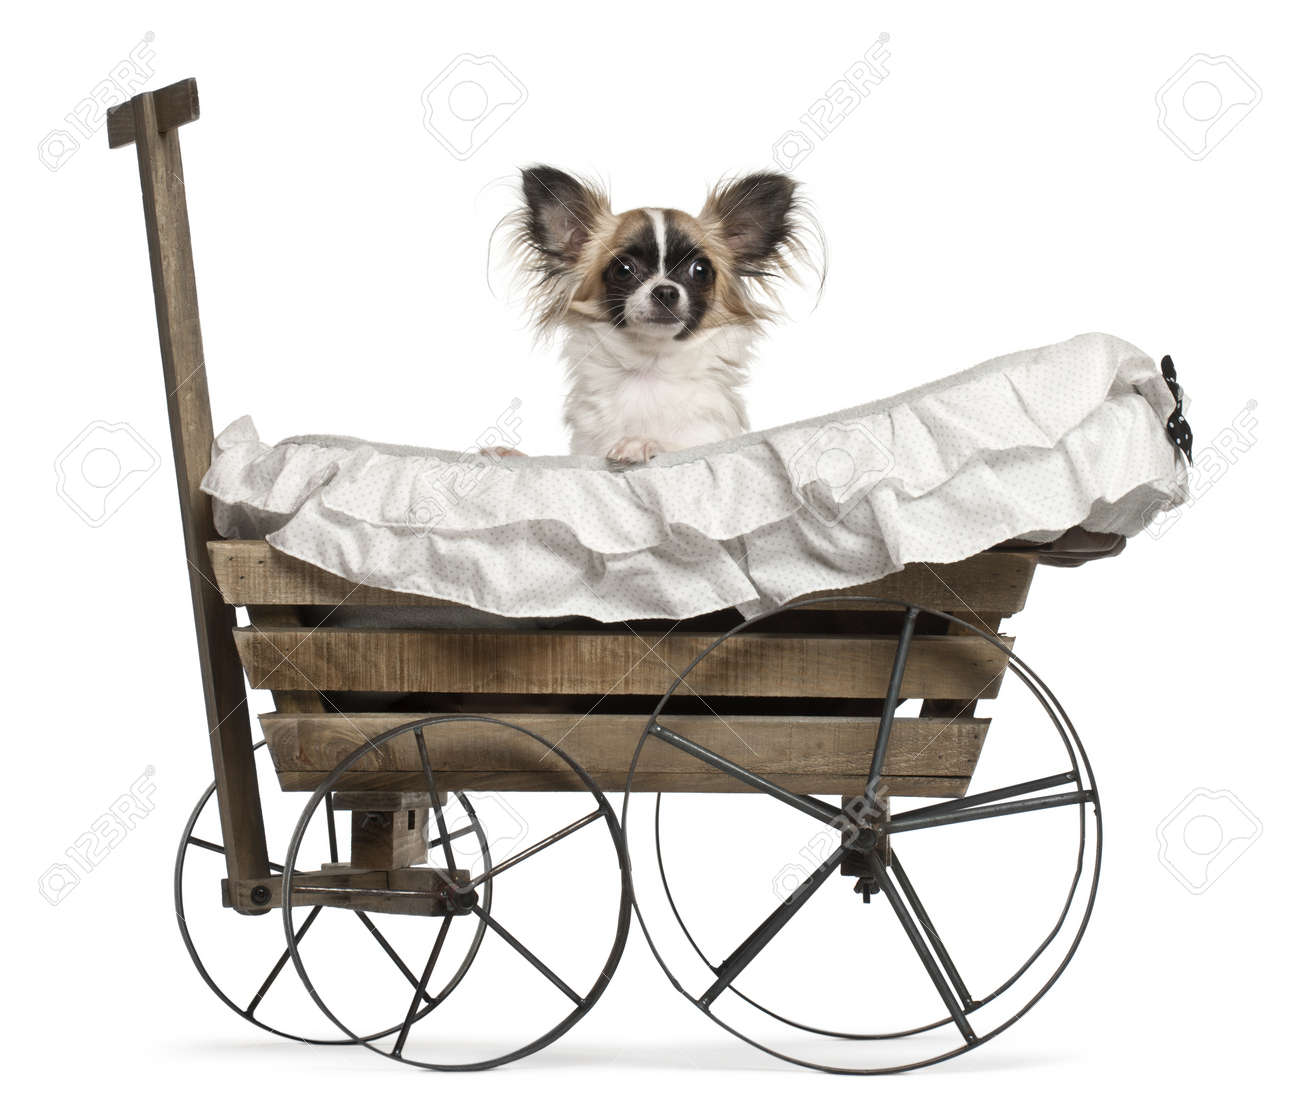 Chihuahua, 10 months old, sitting in old-fashioned wagon in front of white background Stock Photo - 11188539